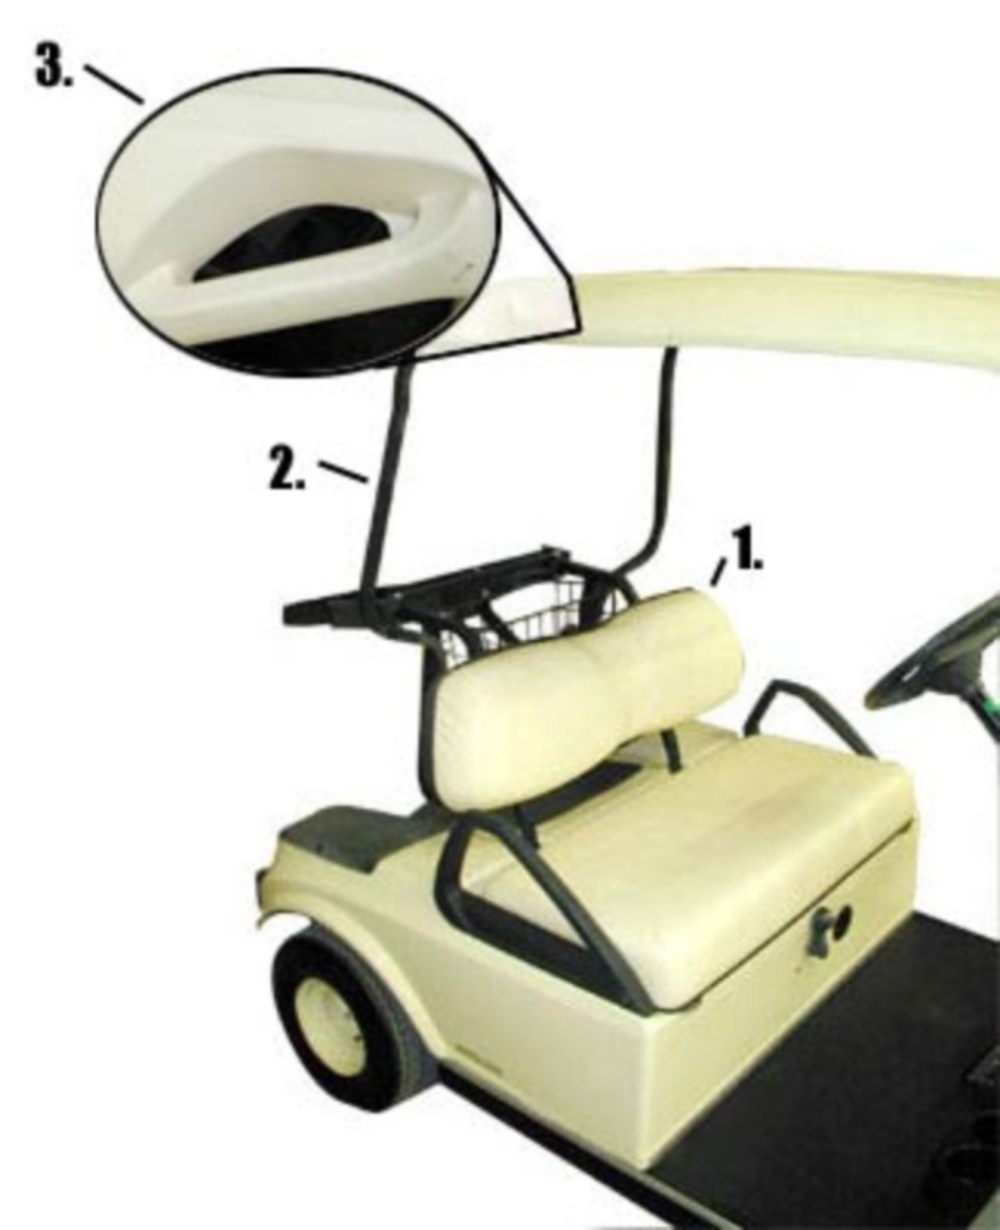 medium resolution of 1982 2000 5 club car s have two distinct seat backs while 2000 5 present models have a connected one piece seat back